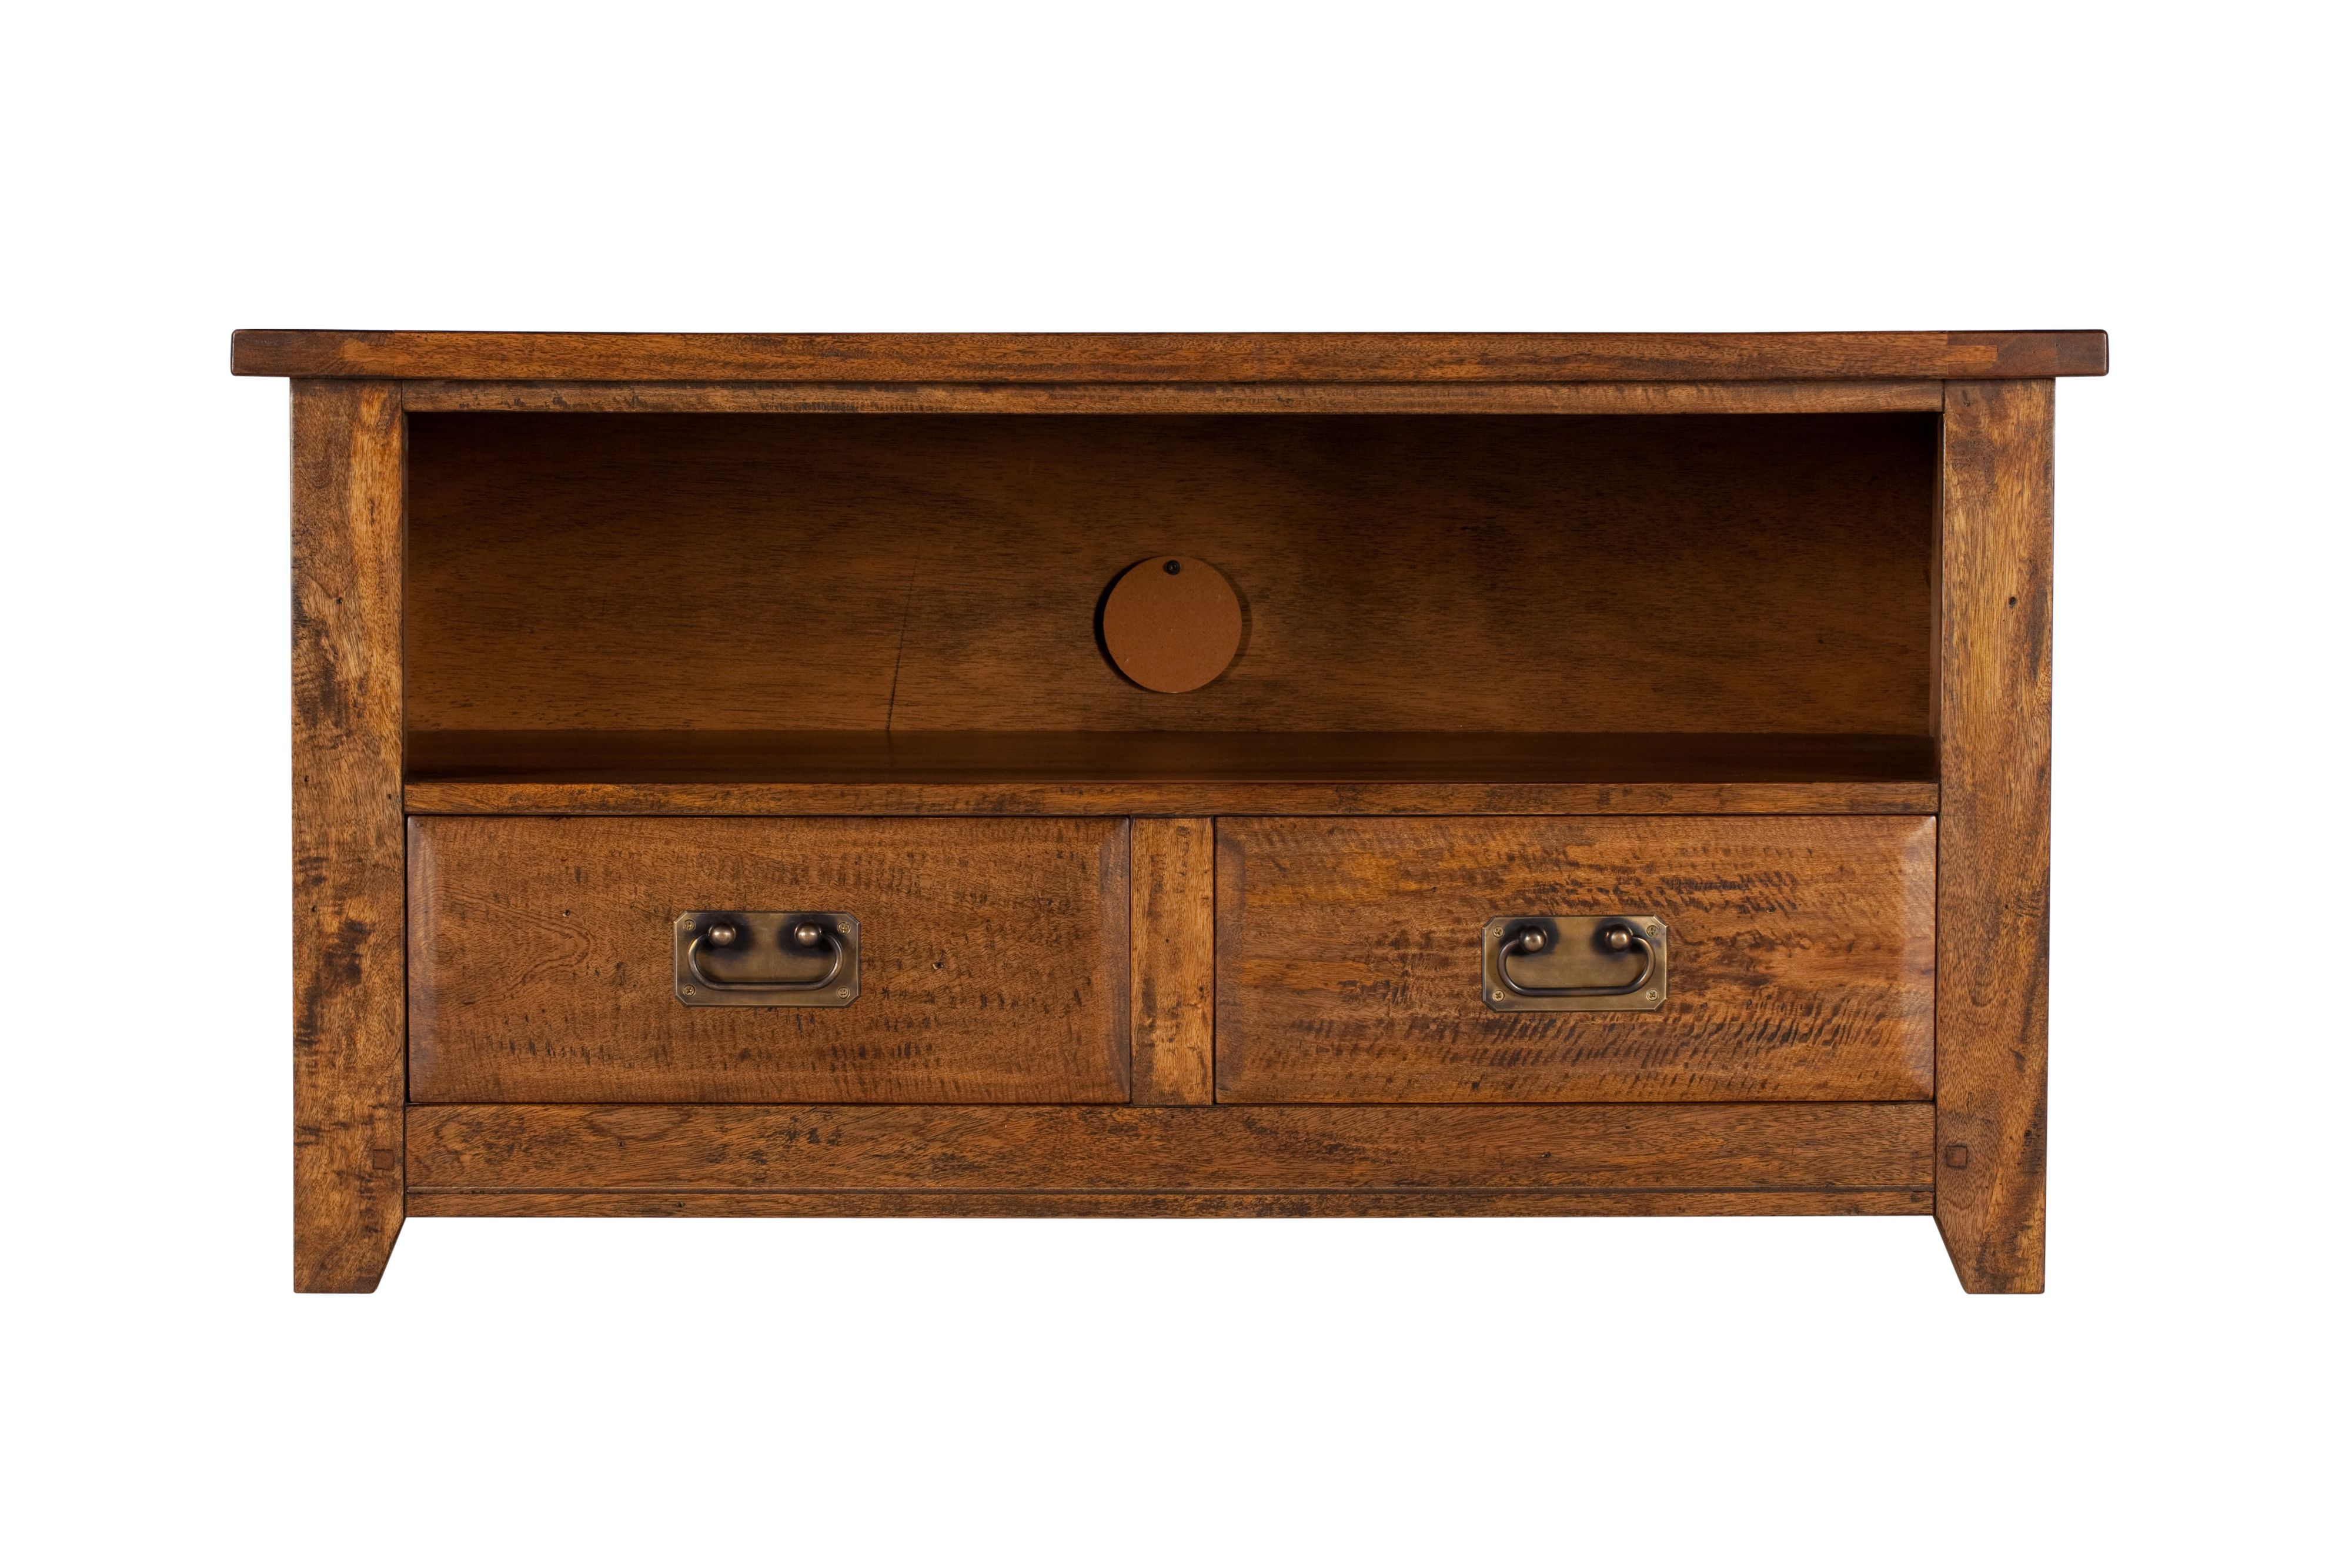 Marlborough TV cabinet